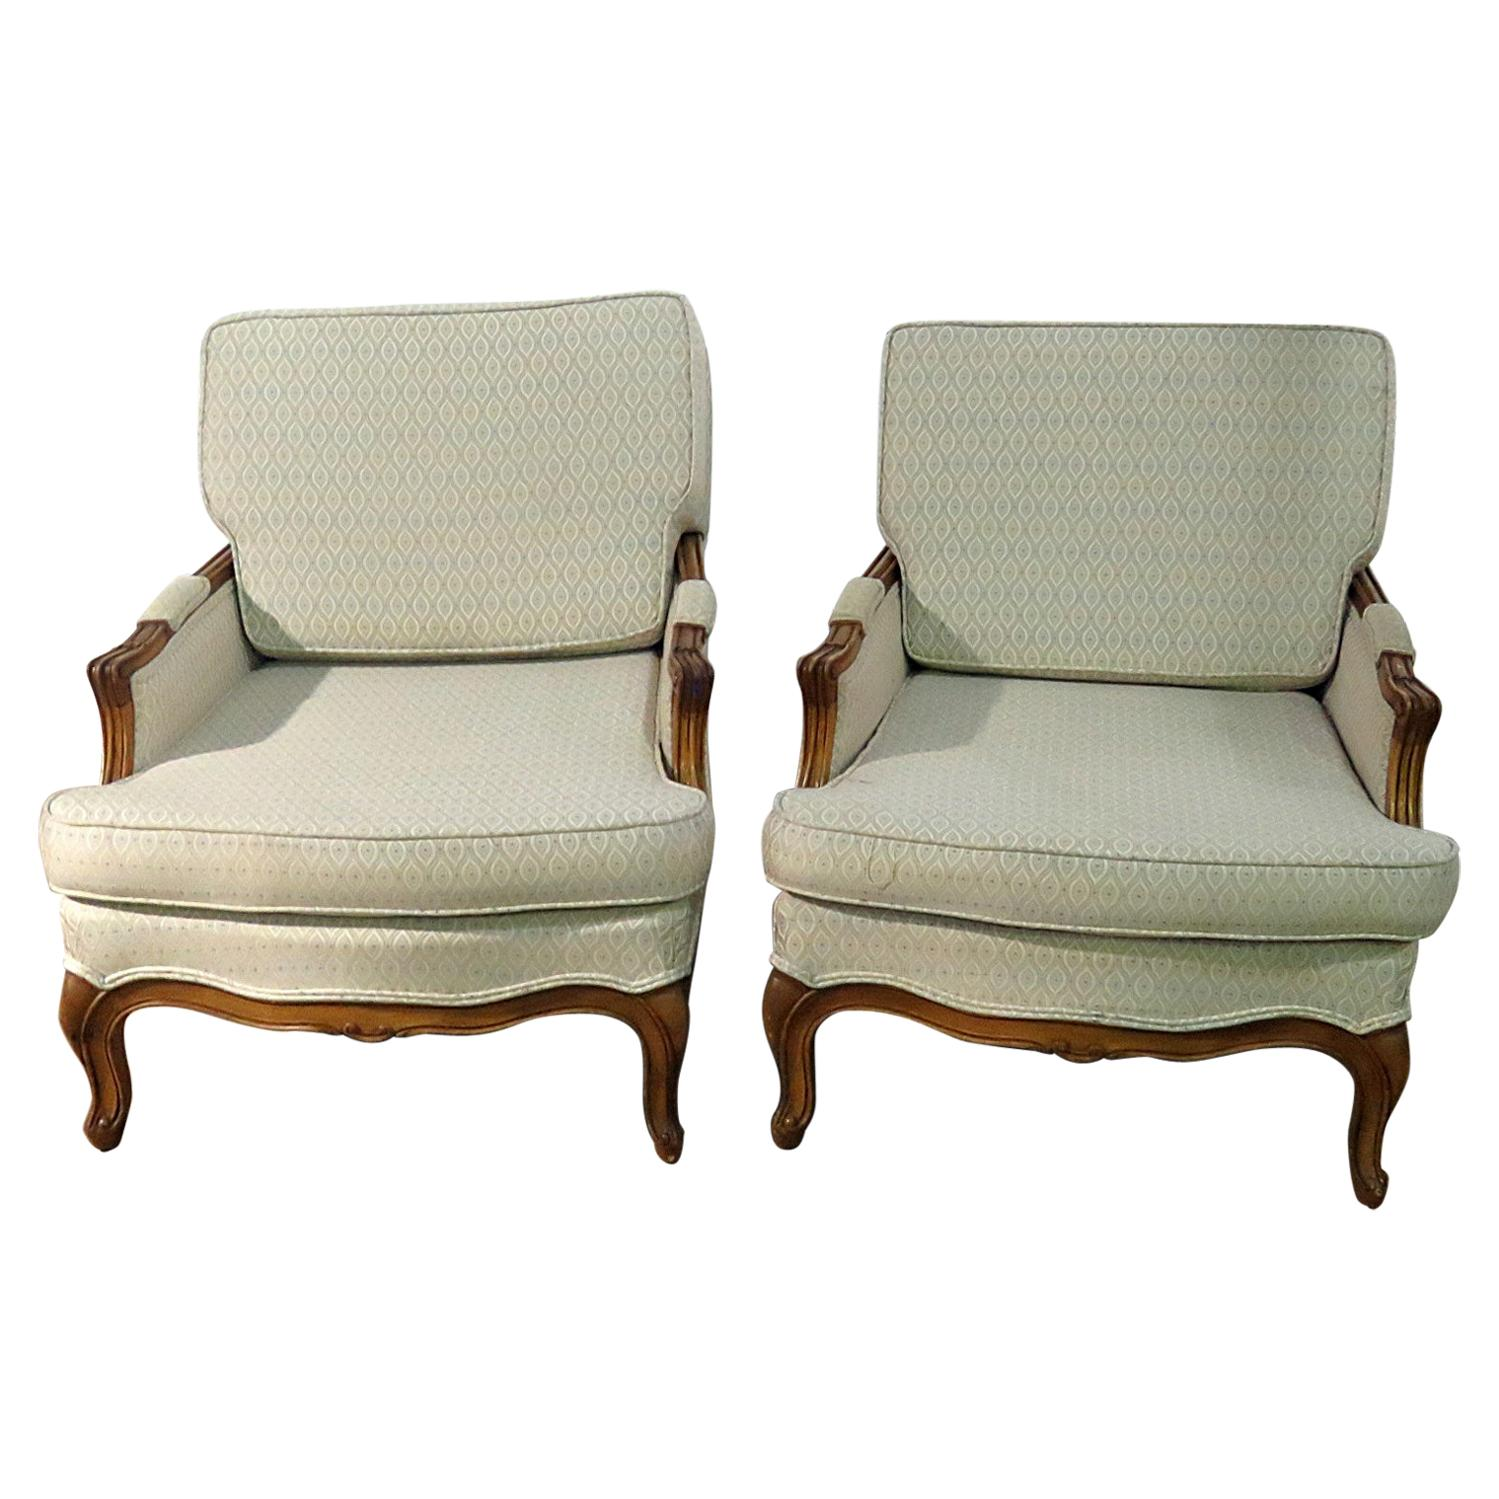 Pair of Country French Bergeres